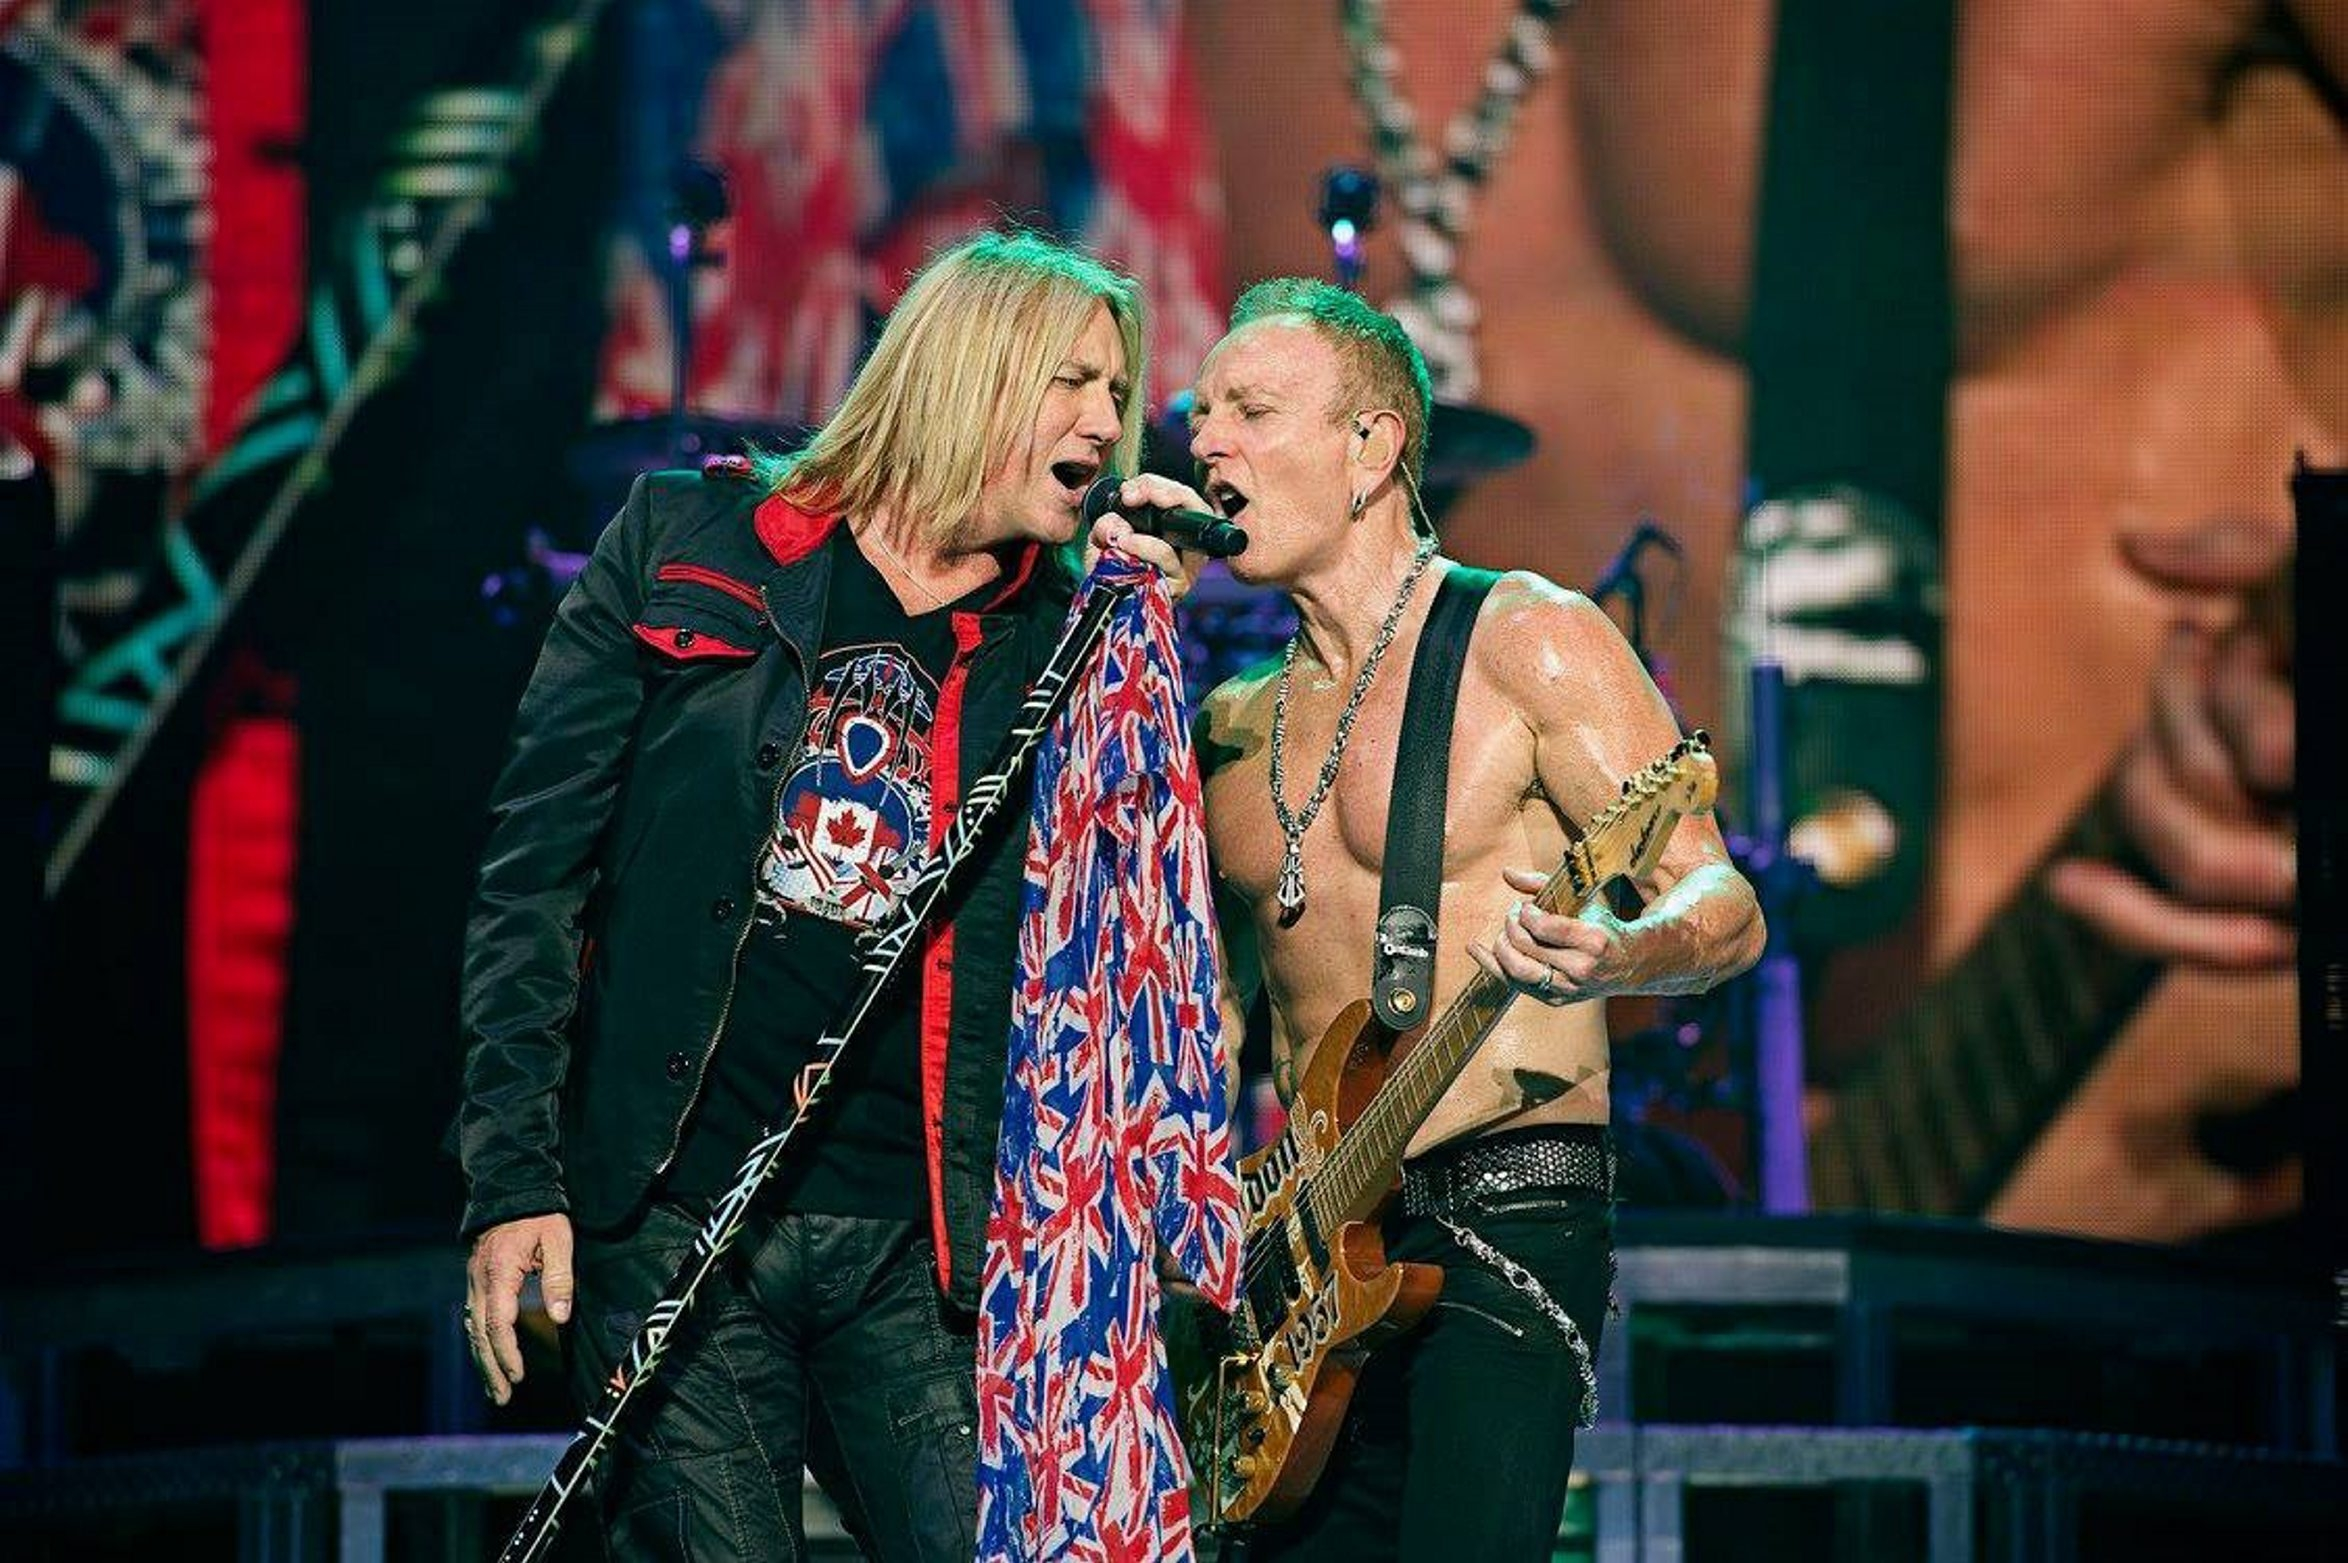 """Joe Elliott, left, and Phil Collen - who, according to Grammy.com, is """"famous for playing shirtless during concerts"""" - are part of the tepid area summer concert season announced so far."""